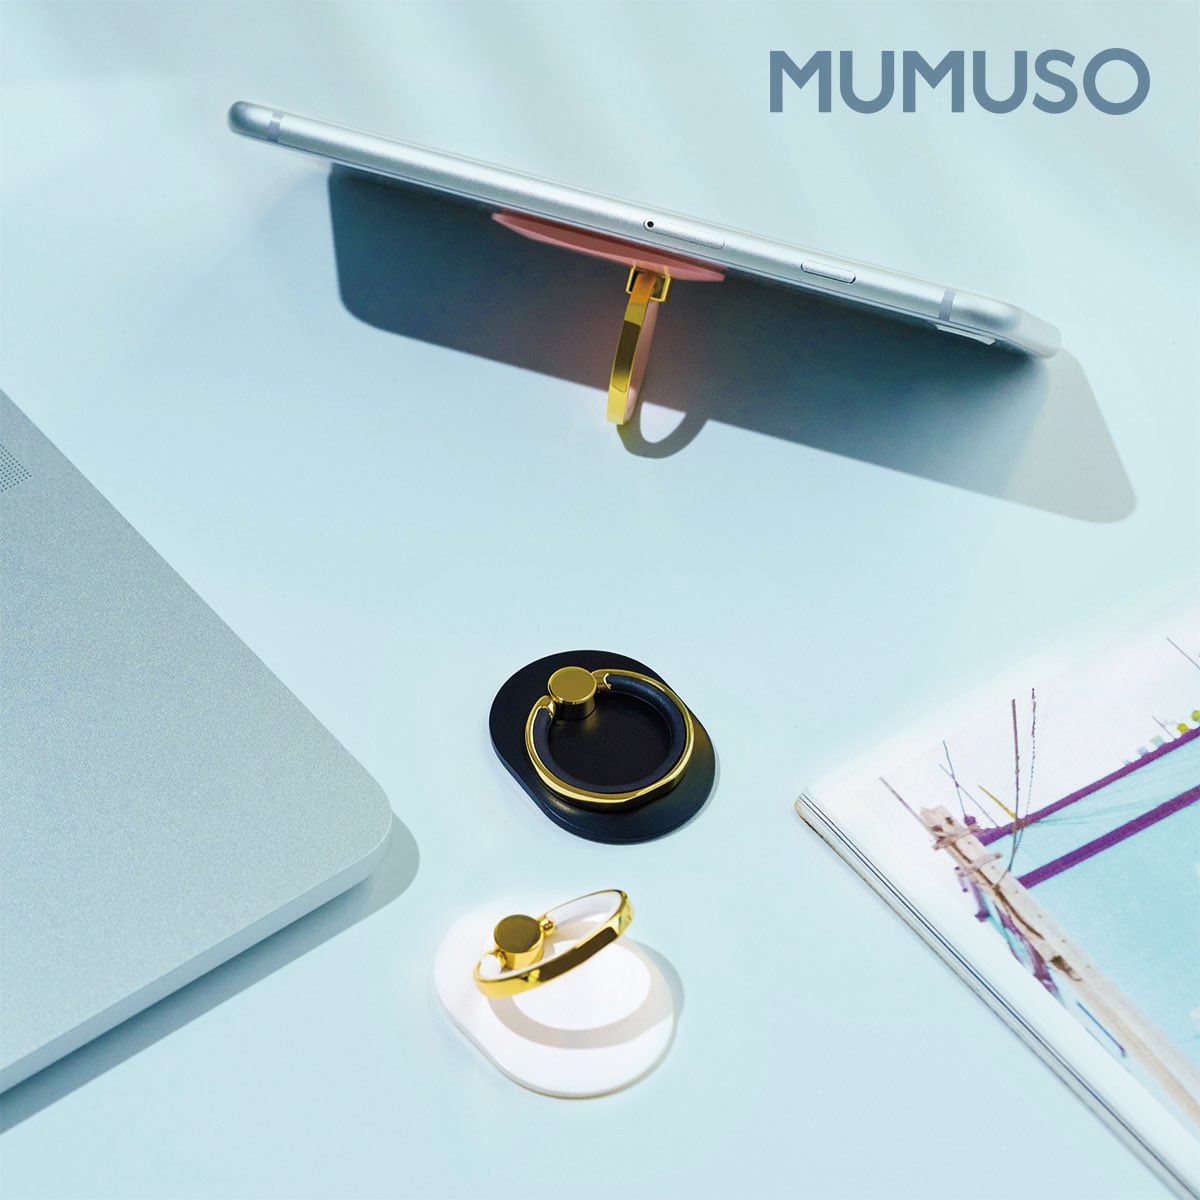 How about adding some elegant standing support to your phone? MUMUSO cell phone stand will fulfill your need.😎 • • • • #MUMUSOFun #mumuso #mumusouae #mumusome  #MUMUSOPicks #MUMUSOHappy #fastfashion #goodproducts  #uaelife #dubailife https://t.co/bcHJCc9mcx